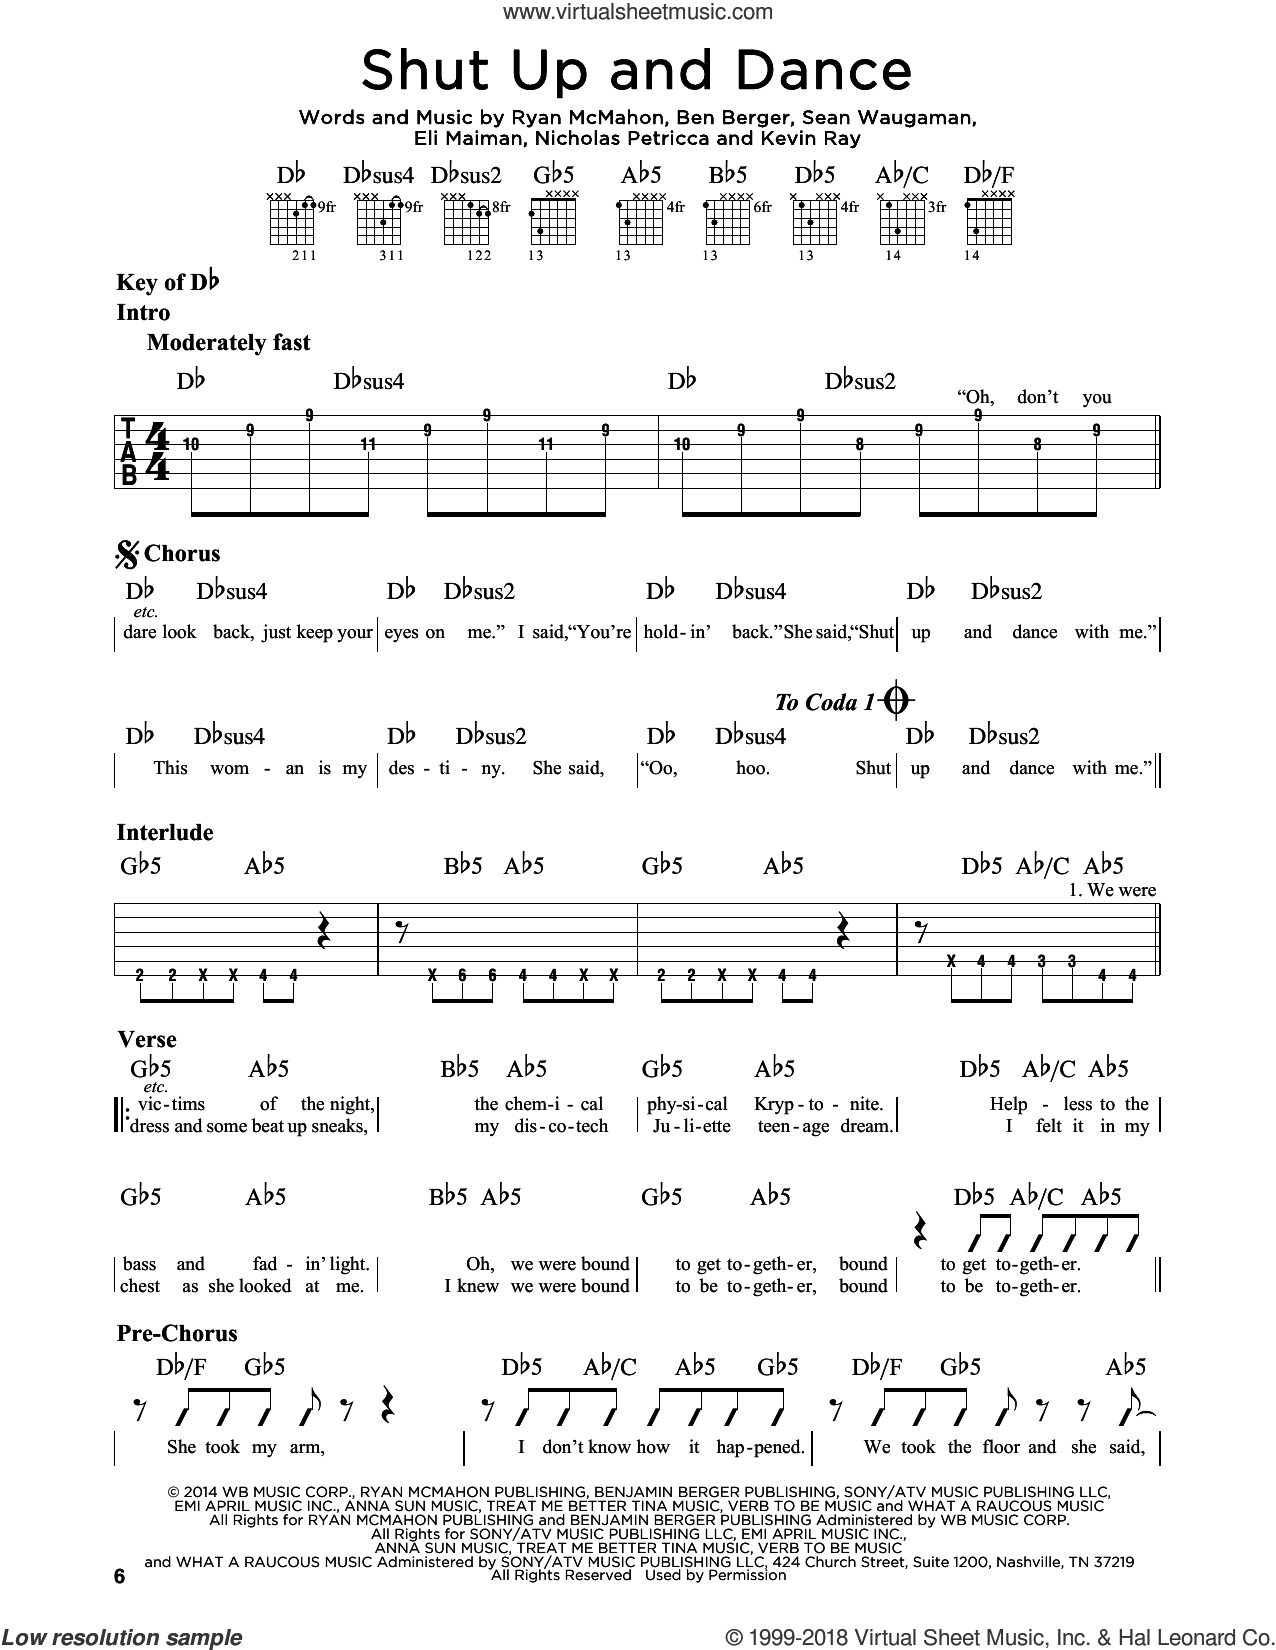 Shut Up And Dance sheet music for guitar solo (lead sheet) by Walk The Moon, Kevin Ray, Nicholas Petricca, Ryan McMahon and Sean Waugaman, intermediate guitar (lead sheet). Score Image Preview.